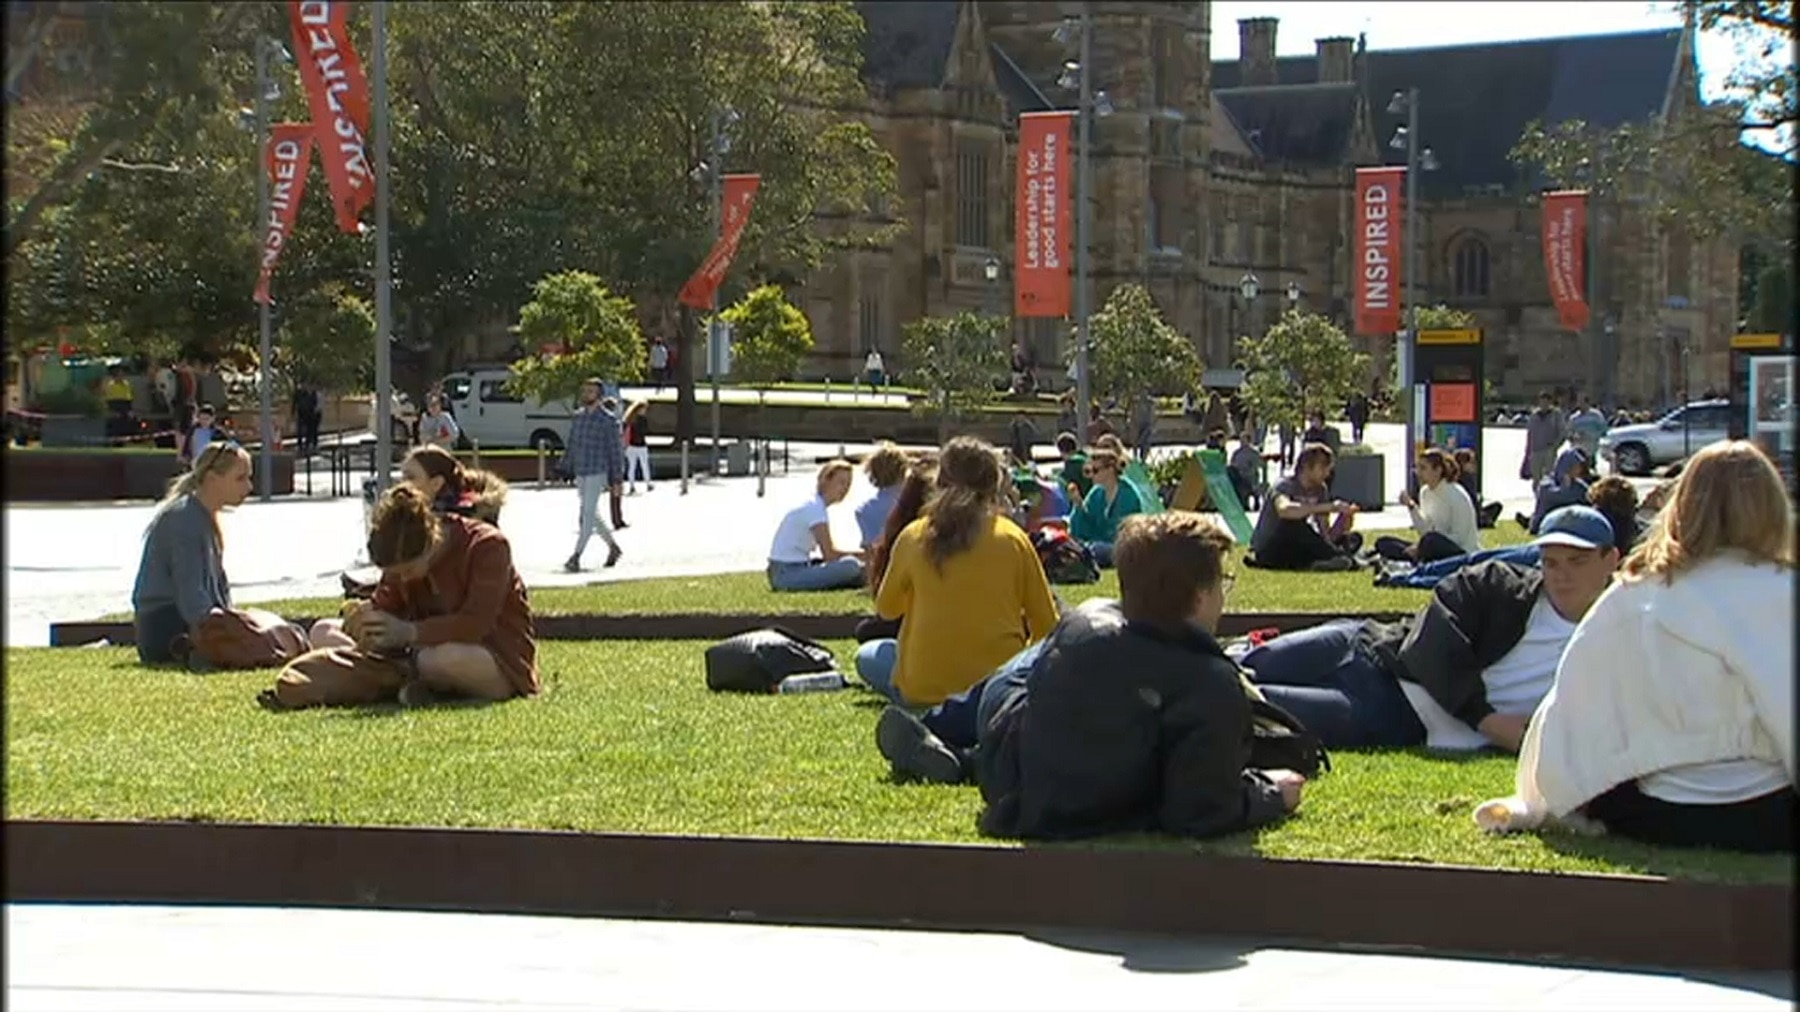 Students at the University of Sydney before the pandemic hit